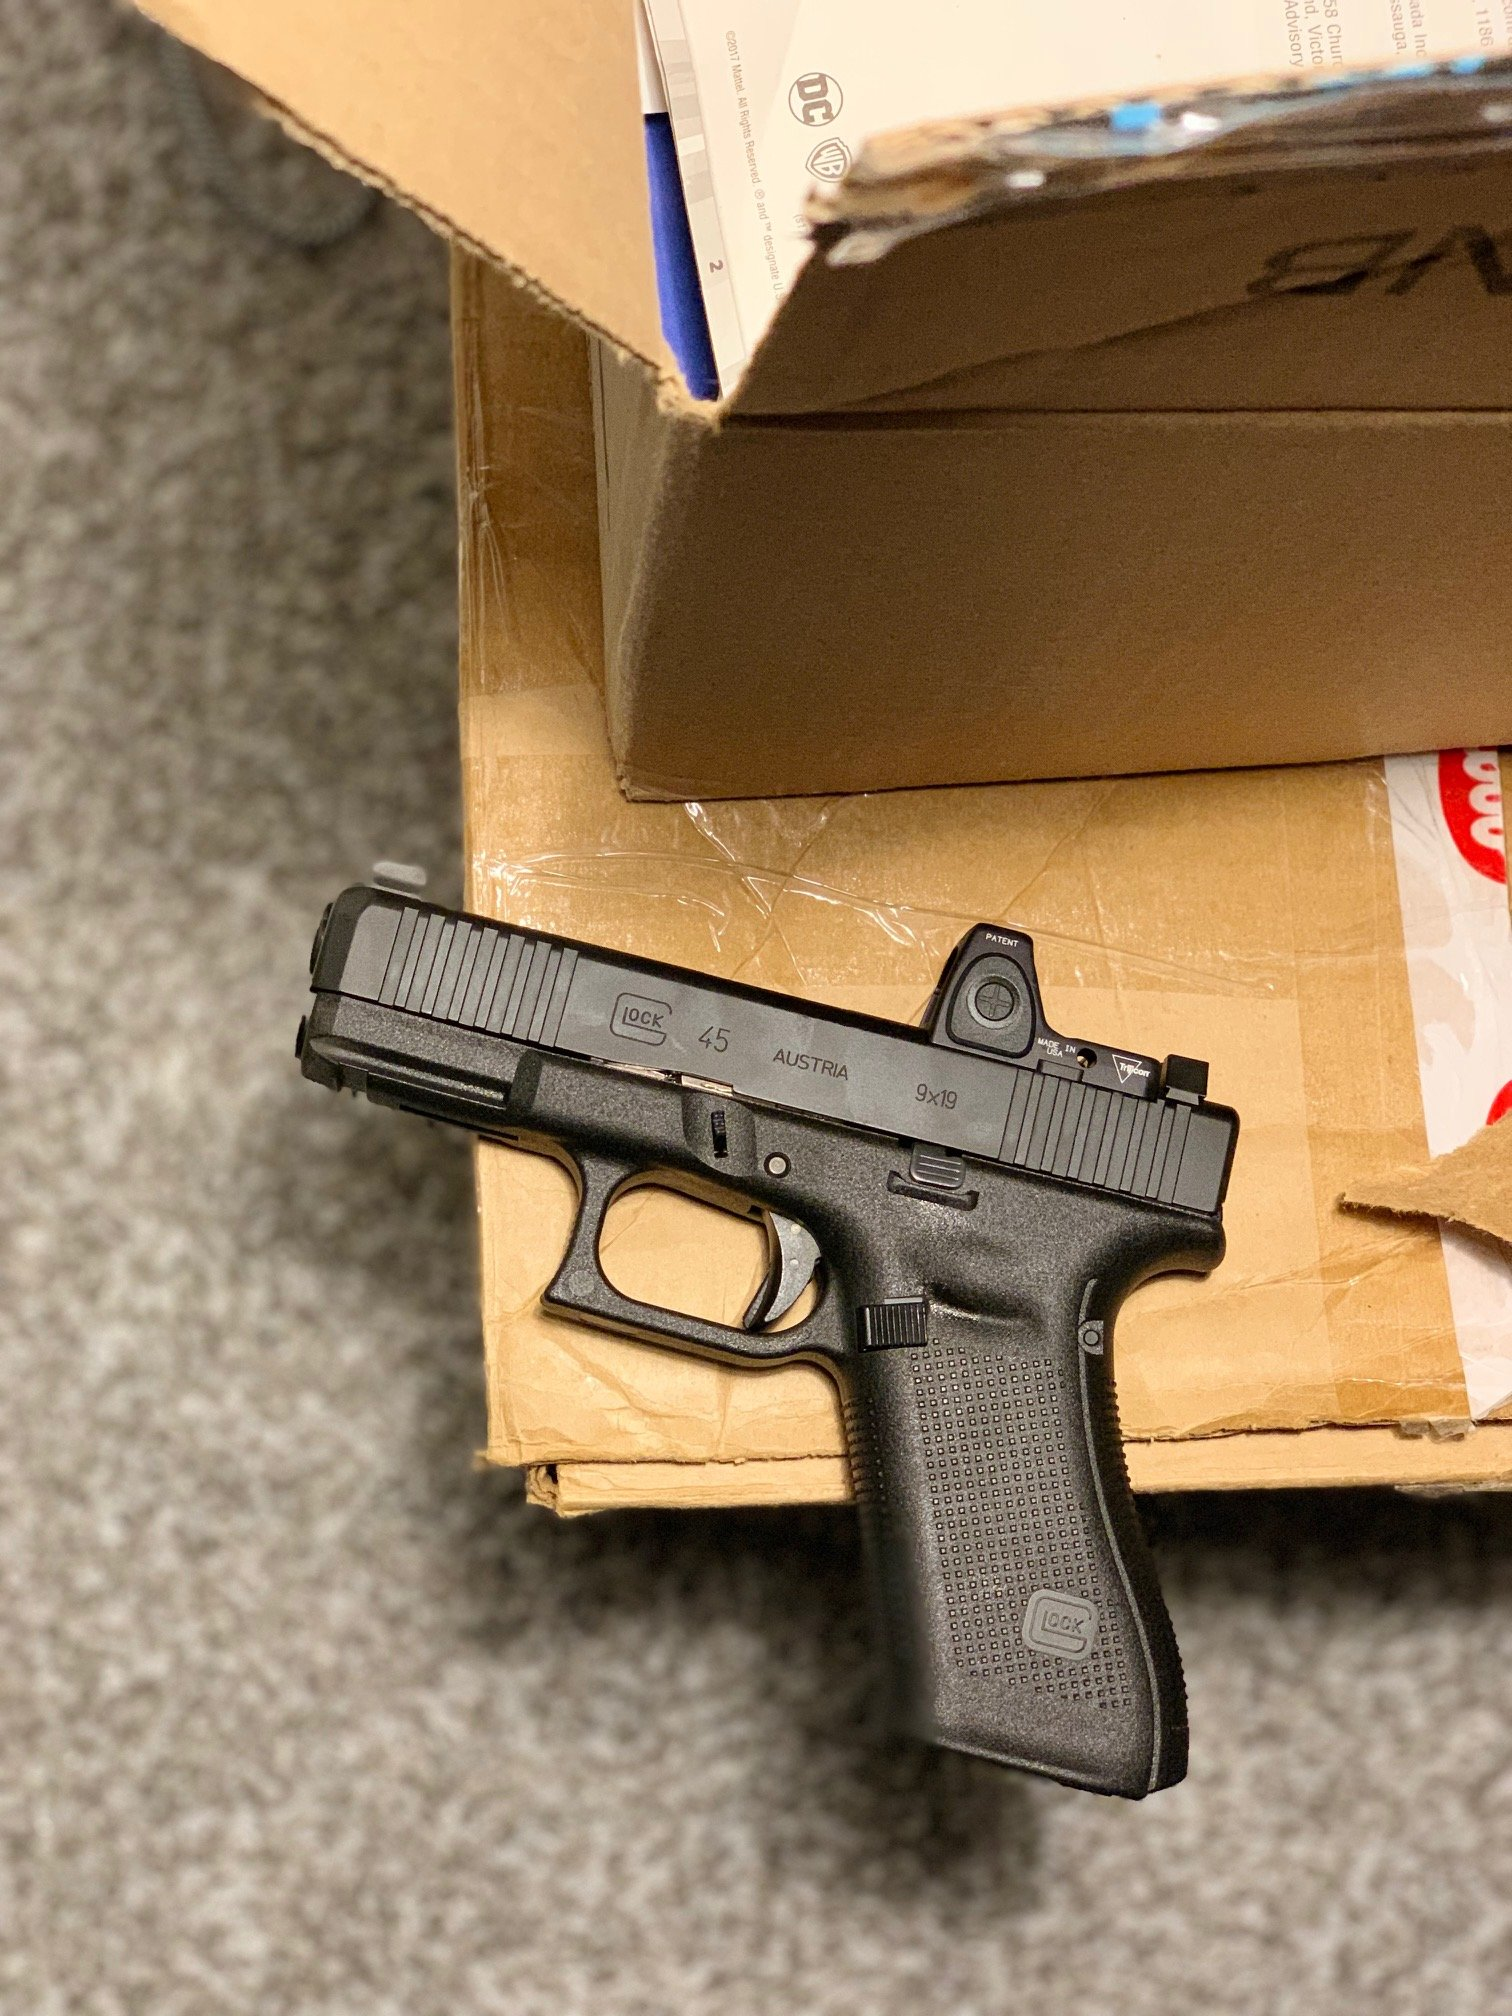 Glock 45 Carry Optics - Glock - Brian Enos's Forums    Maku